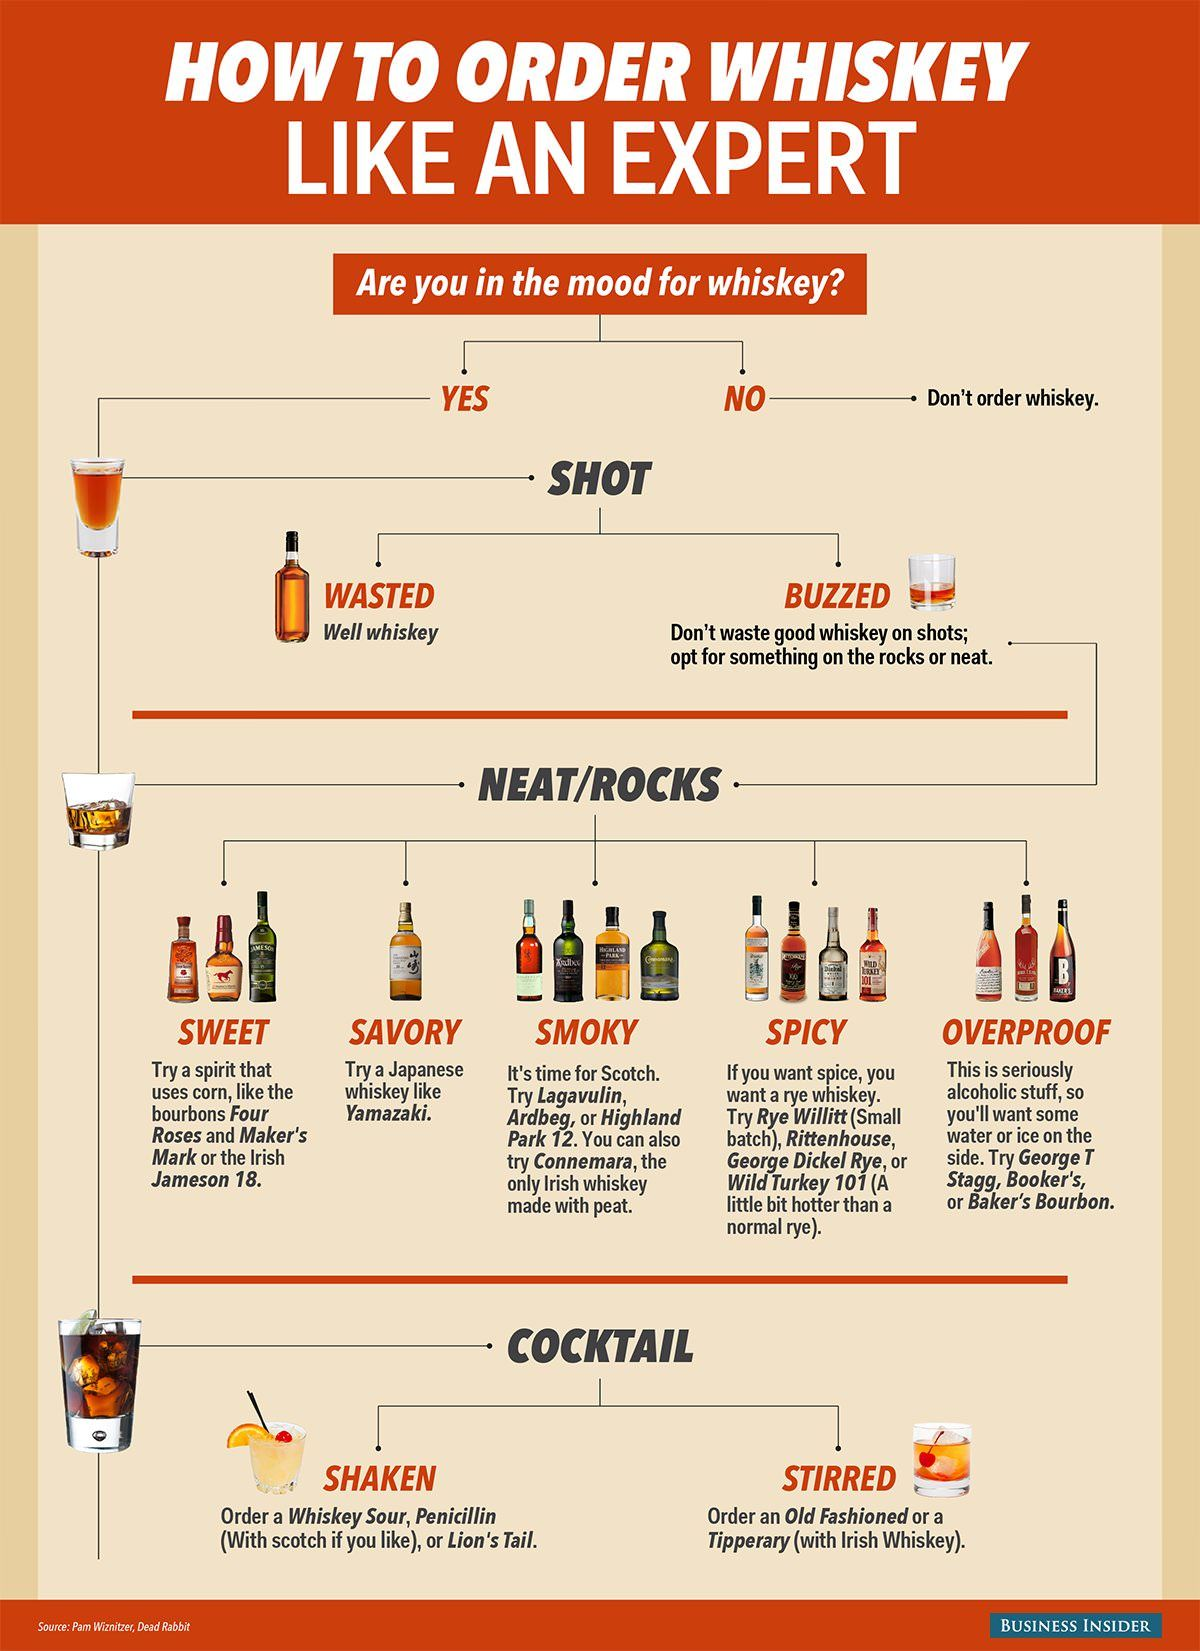 a few facts about whisky whiskey